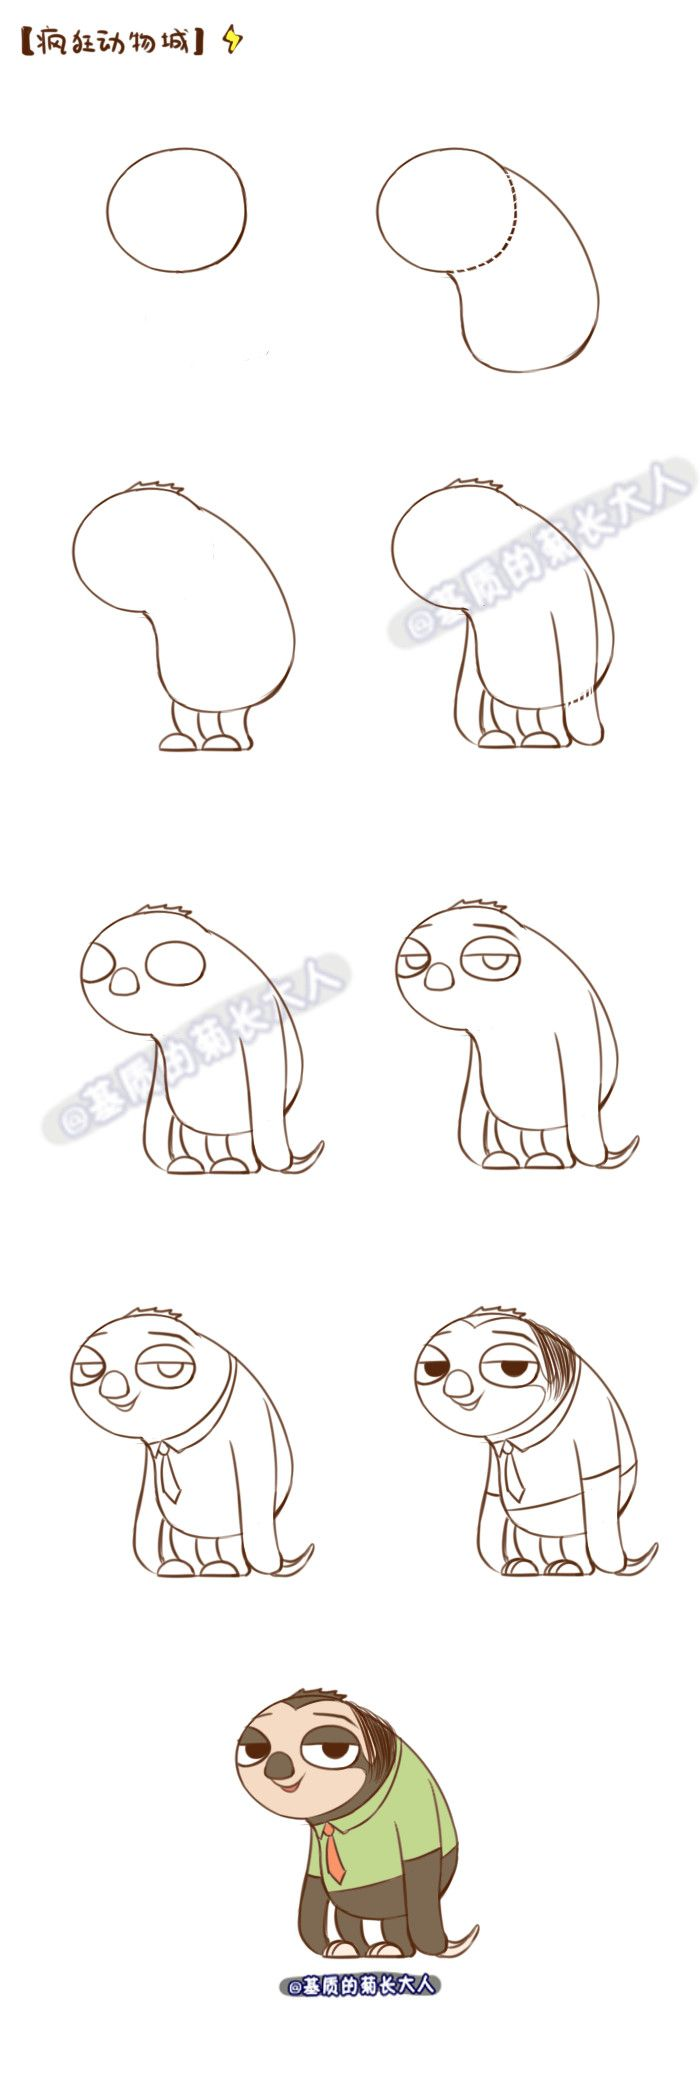 Drawn sloth white background Sloth @ Pinterest Hekou Hekou